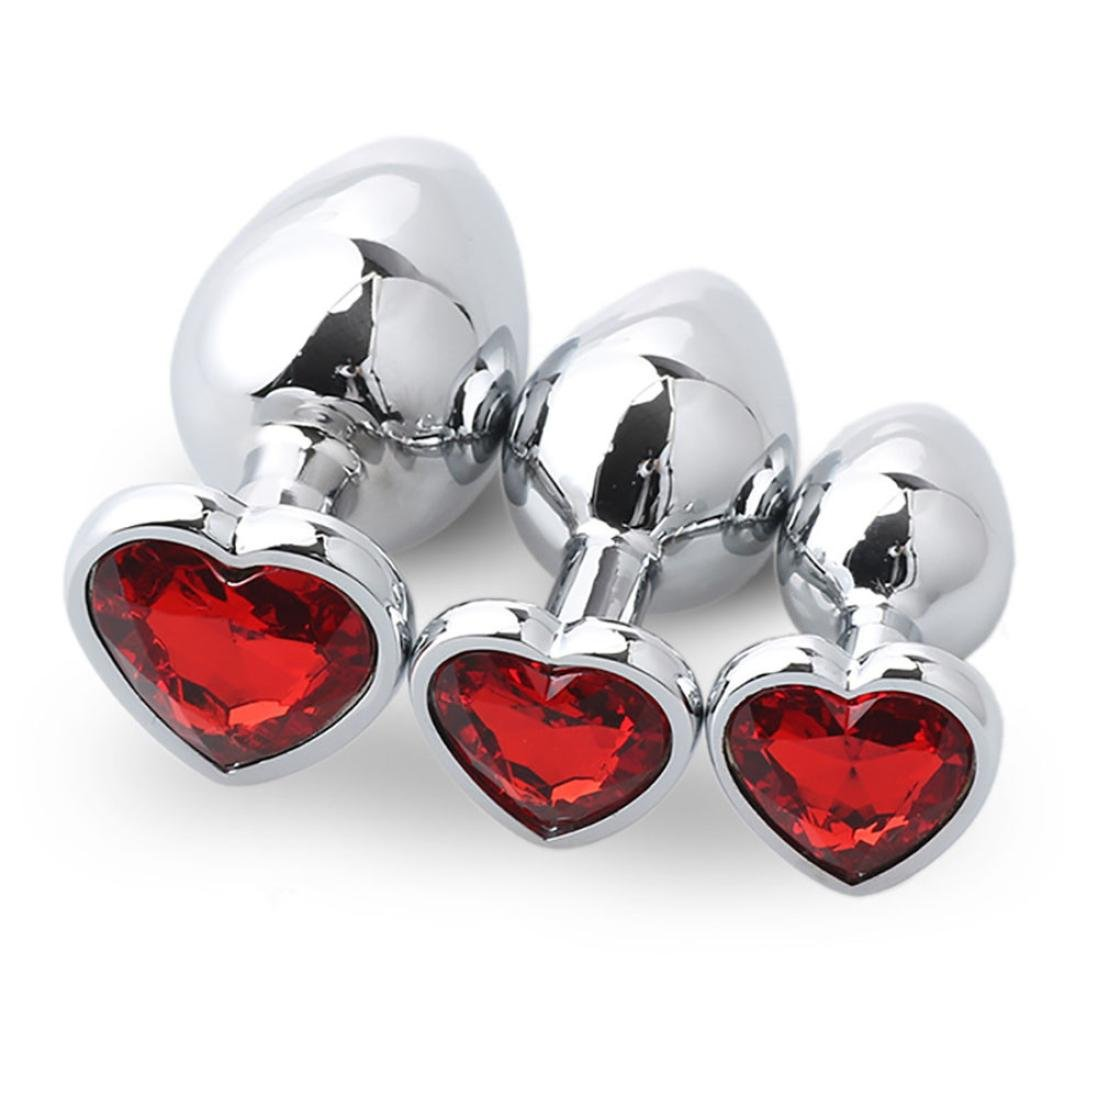 Yoyorule 3 Pcs Heart Shaped Butt-Anal-Play Sex Base with Jewelry Birth Stone G-spot Rose Jewel (Red)